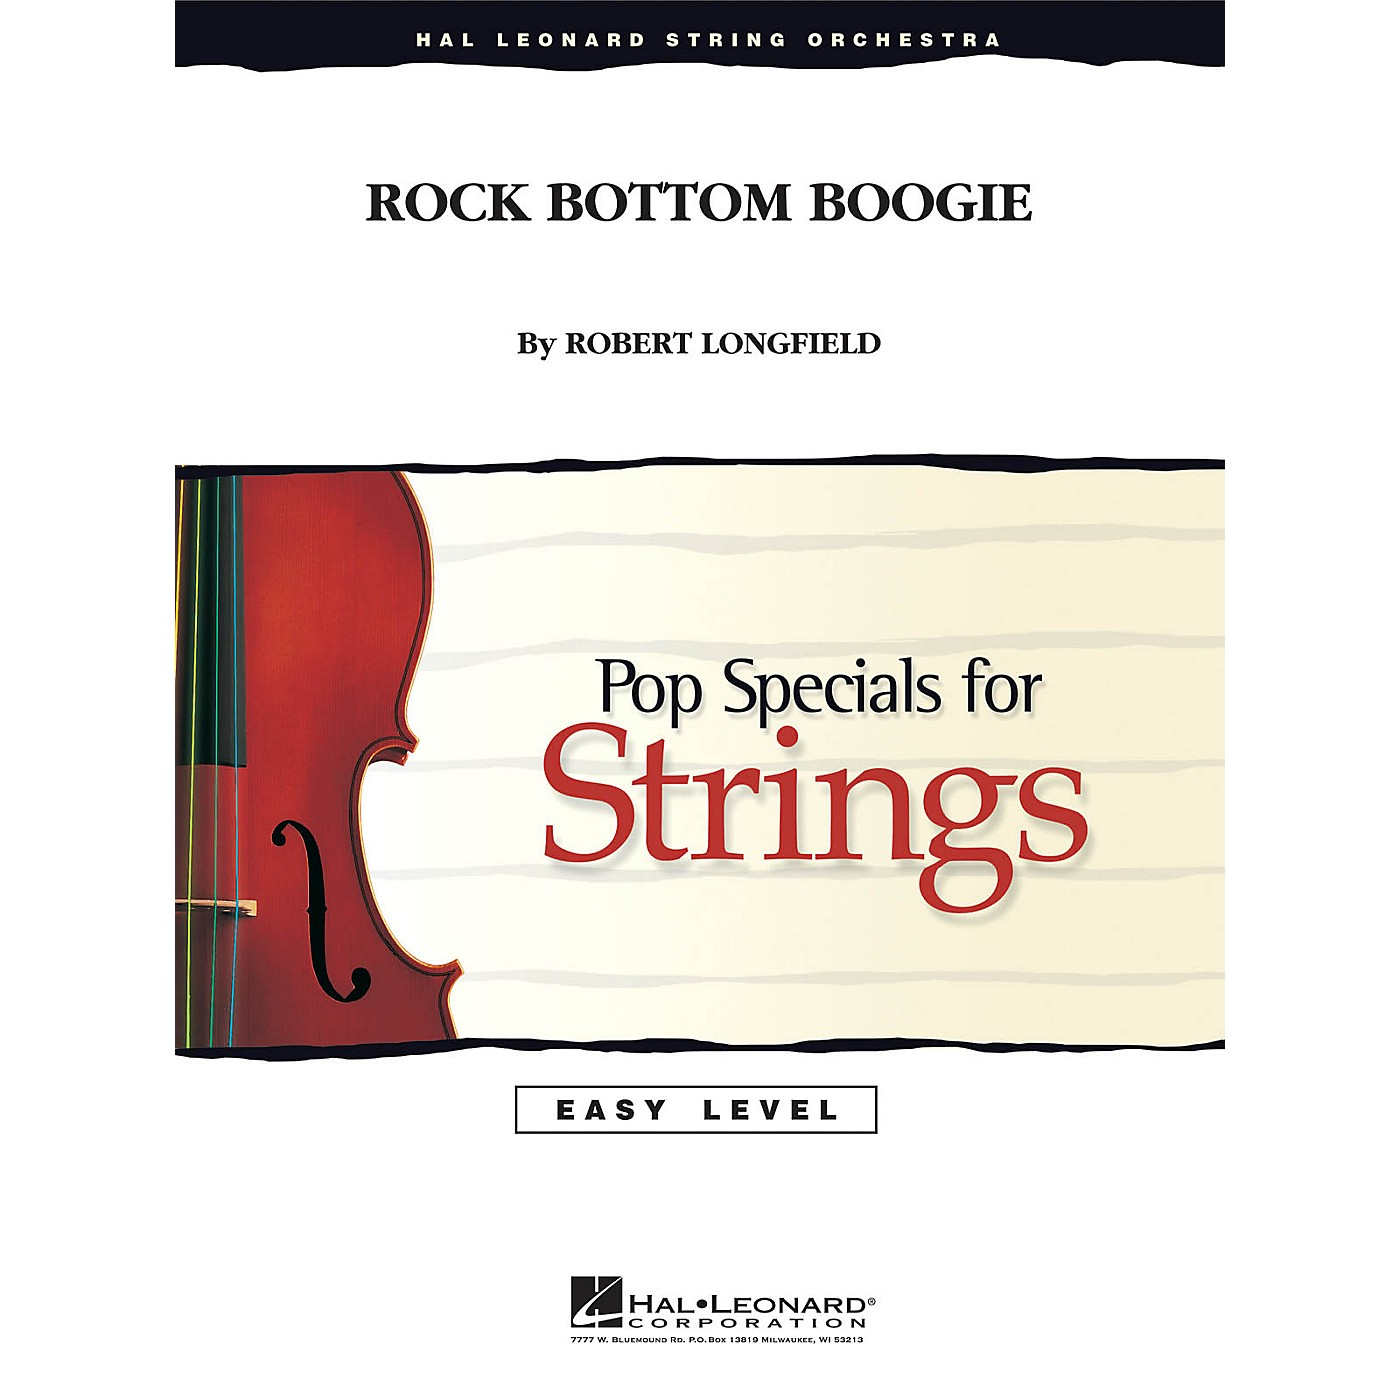 Hal Leonard Rock Bottom Boogie Easy Pop Specials For Strings Series Composed by Robert Longfield thumbnail